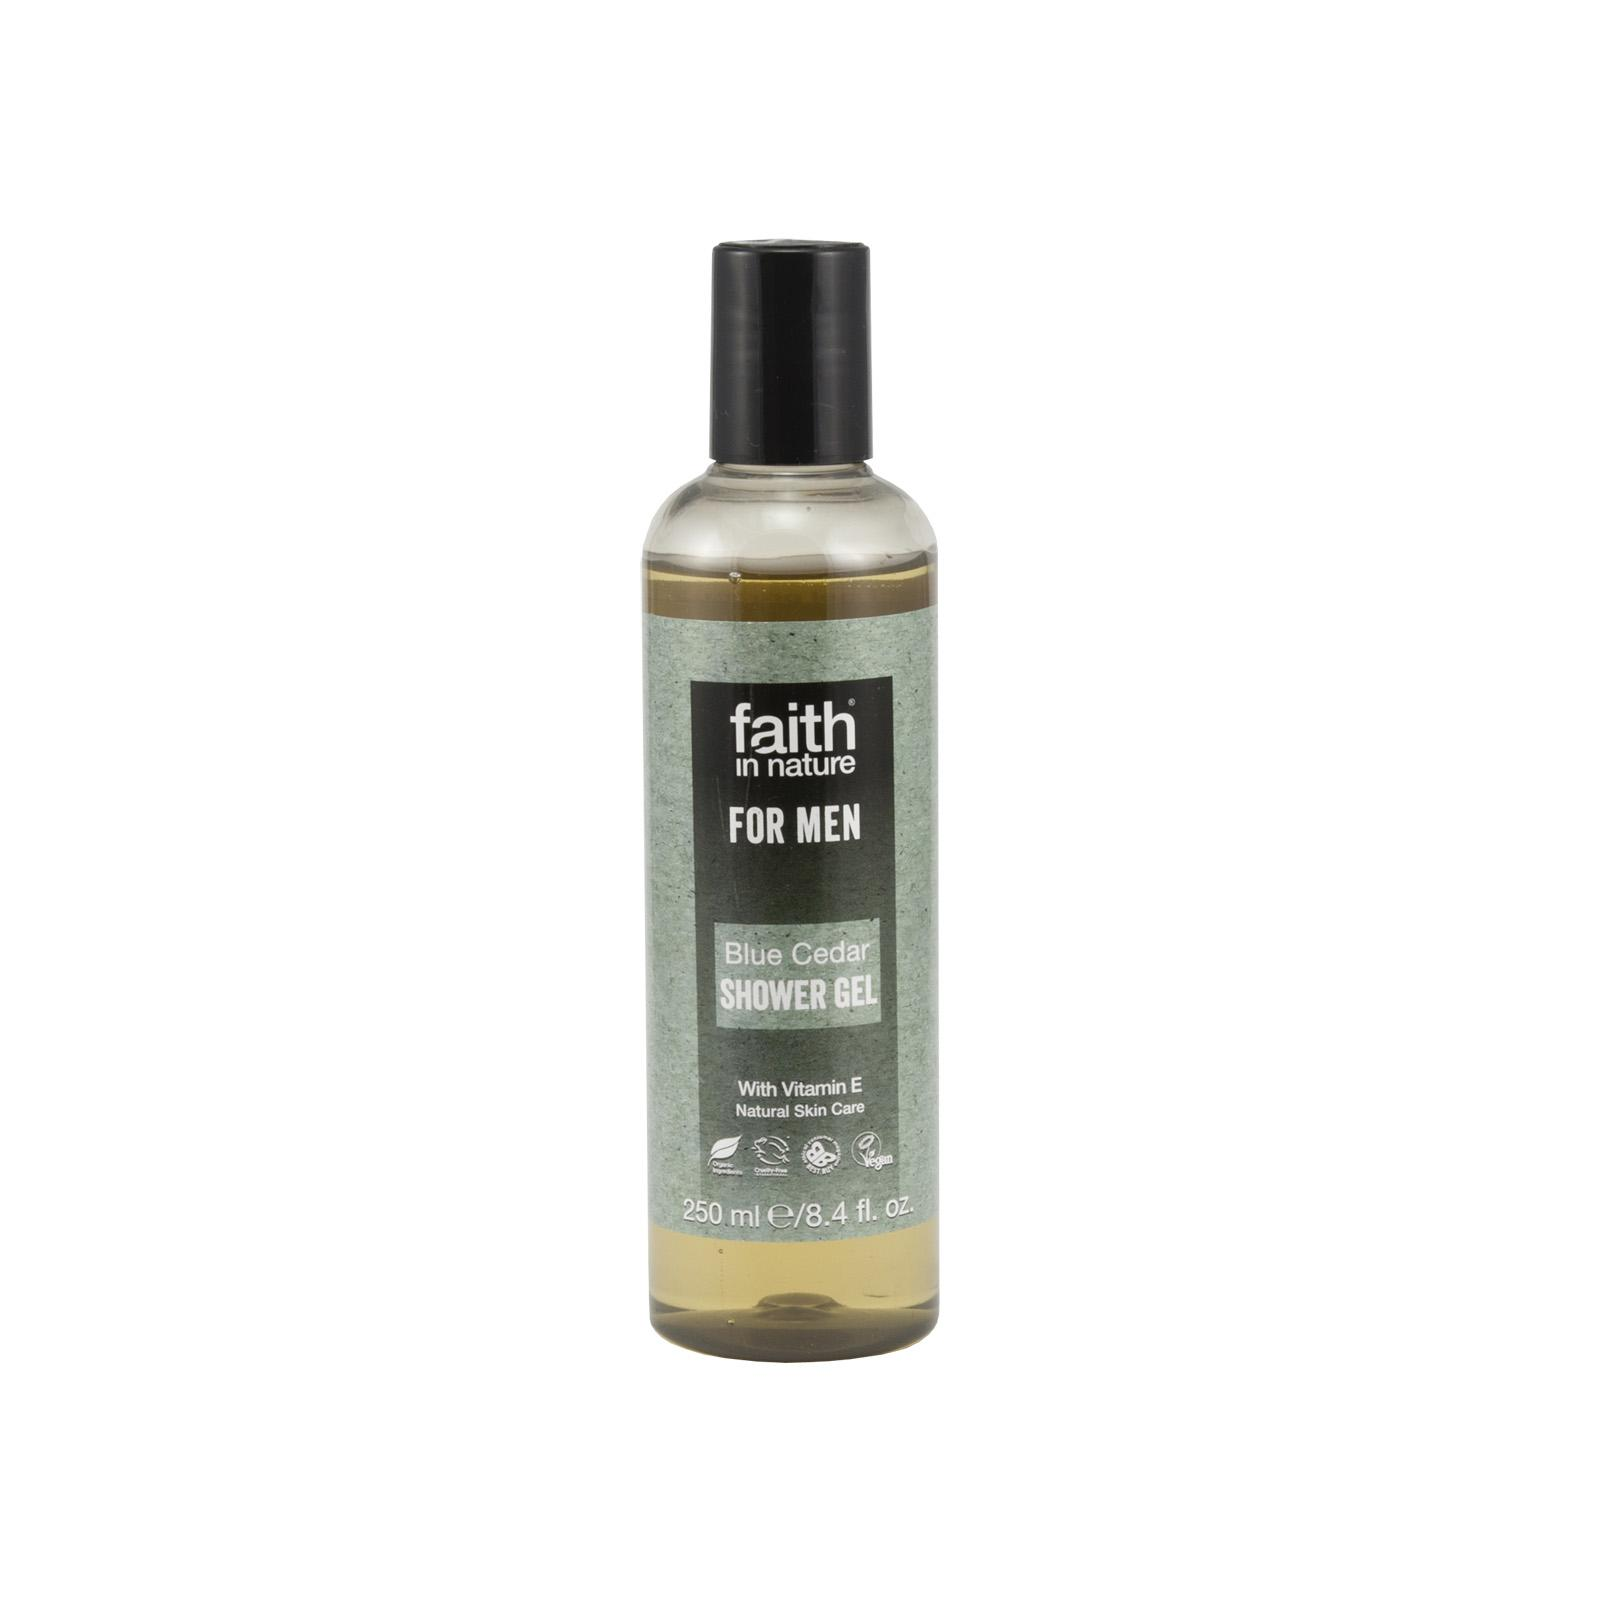 Faith in Nature Sprchový gel modrý cedr, Faith for men 250 ml